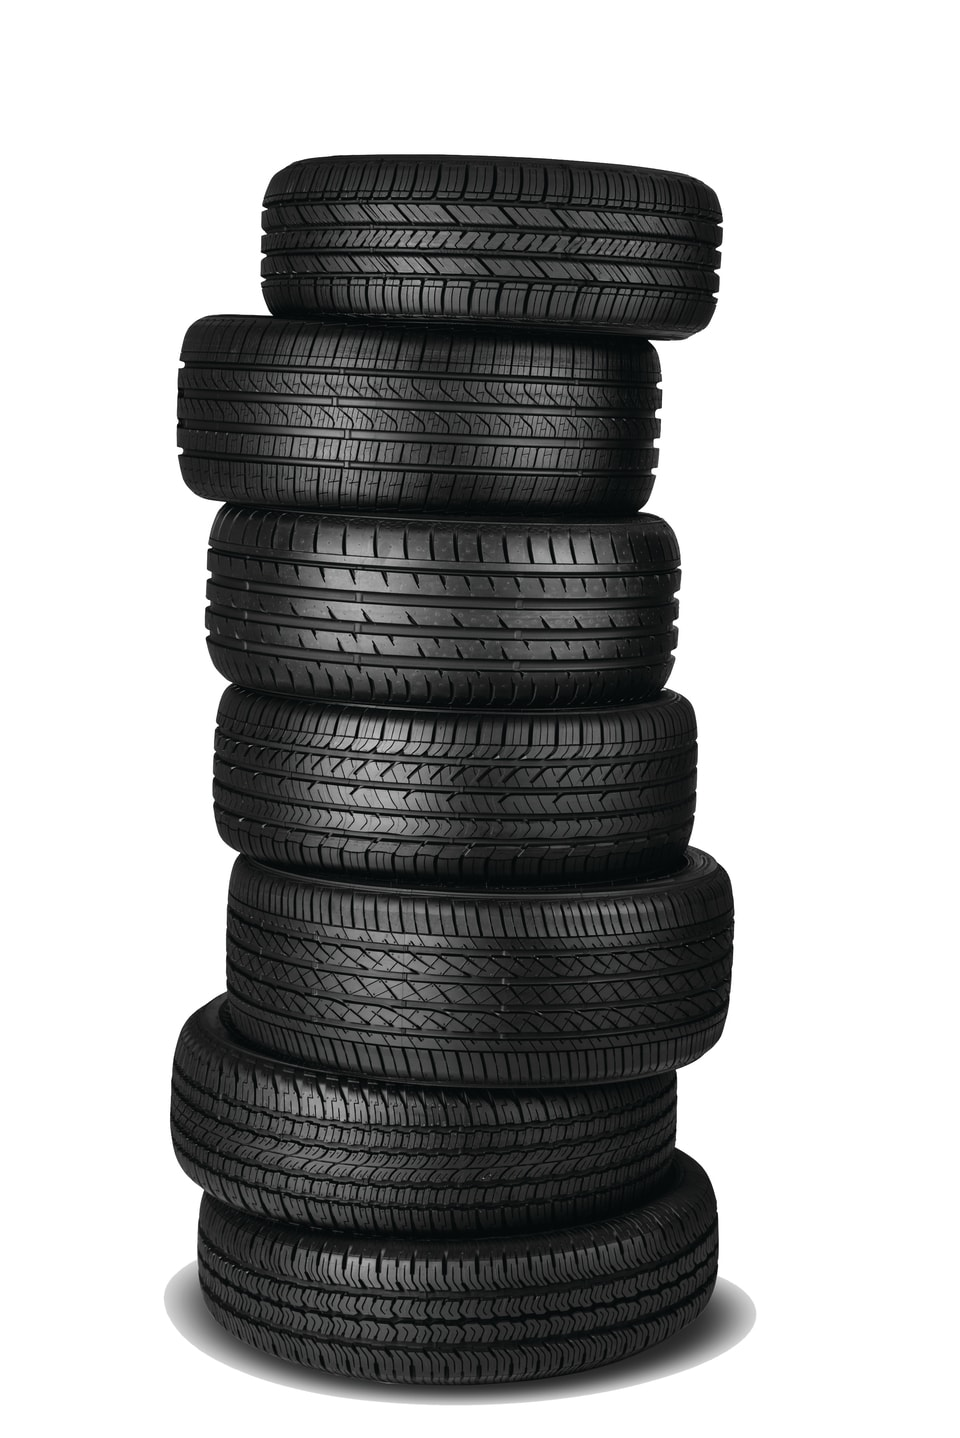 Find The Right Tires For Your Vehicle And Have Them Installed At